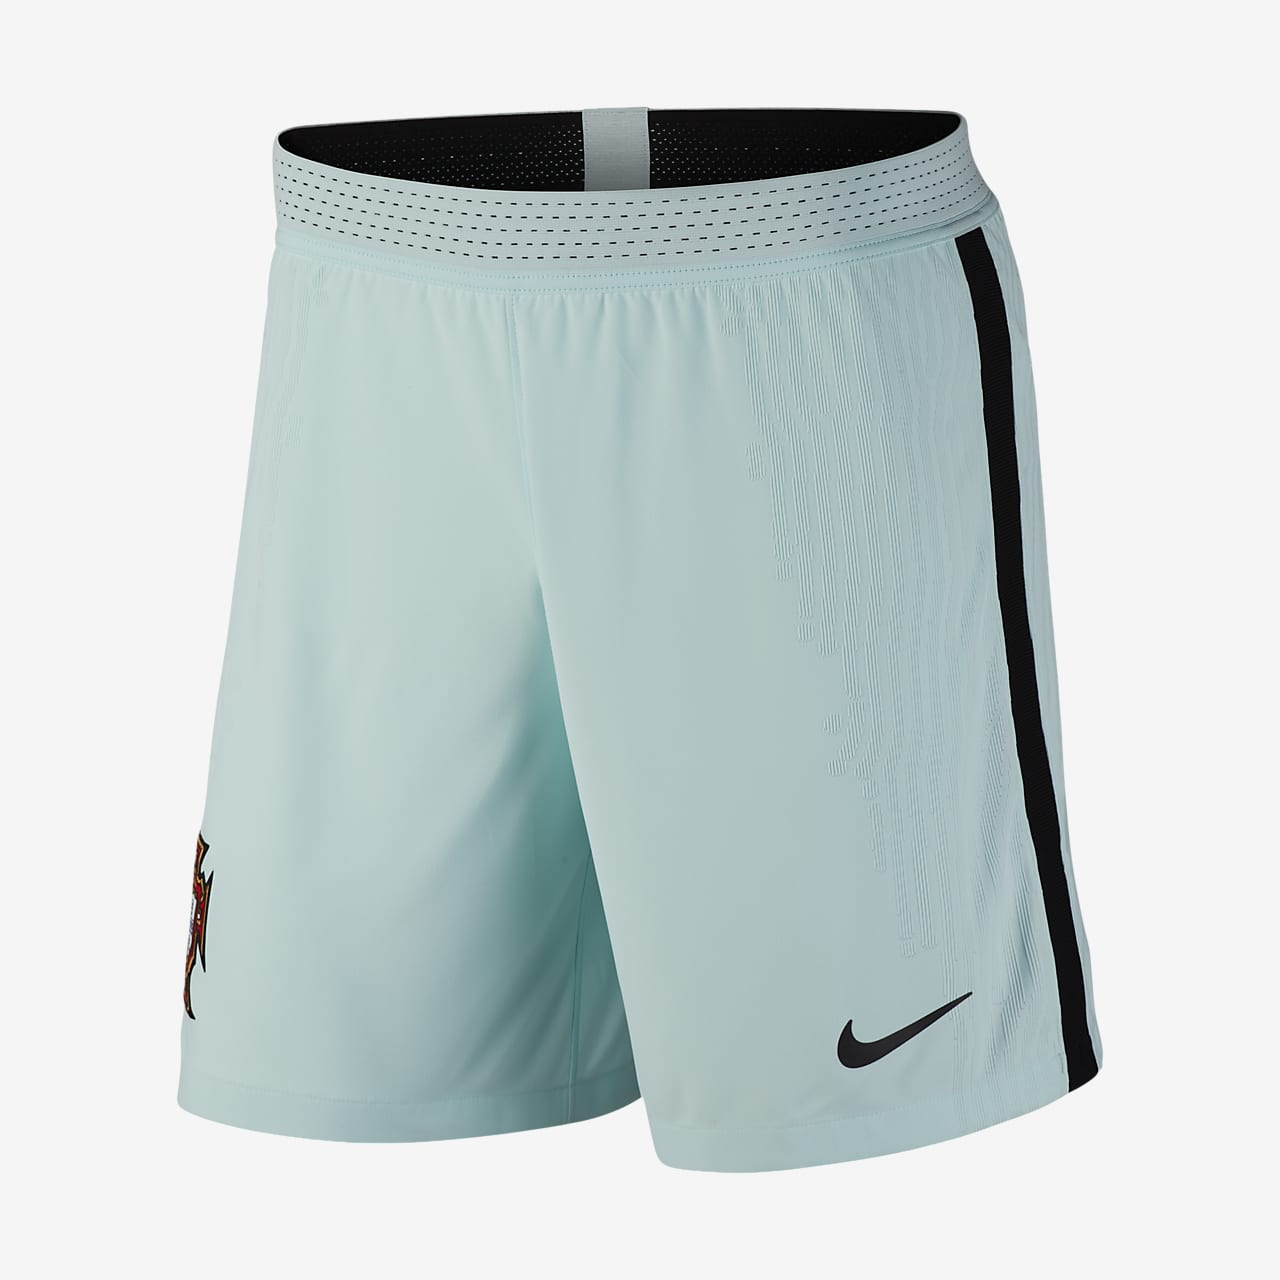 Portugal 2020 Vapor Match Away Men's Football Shorts